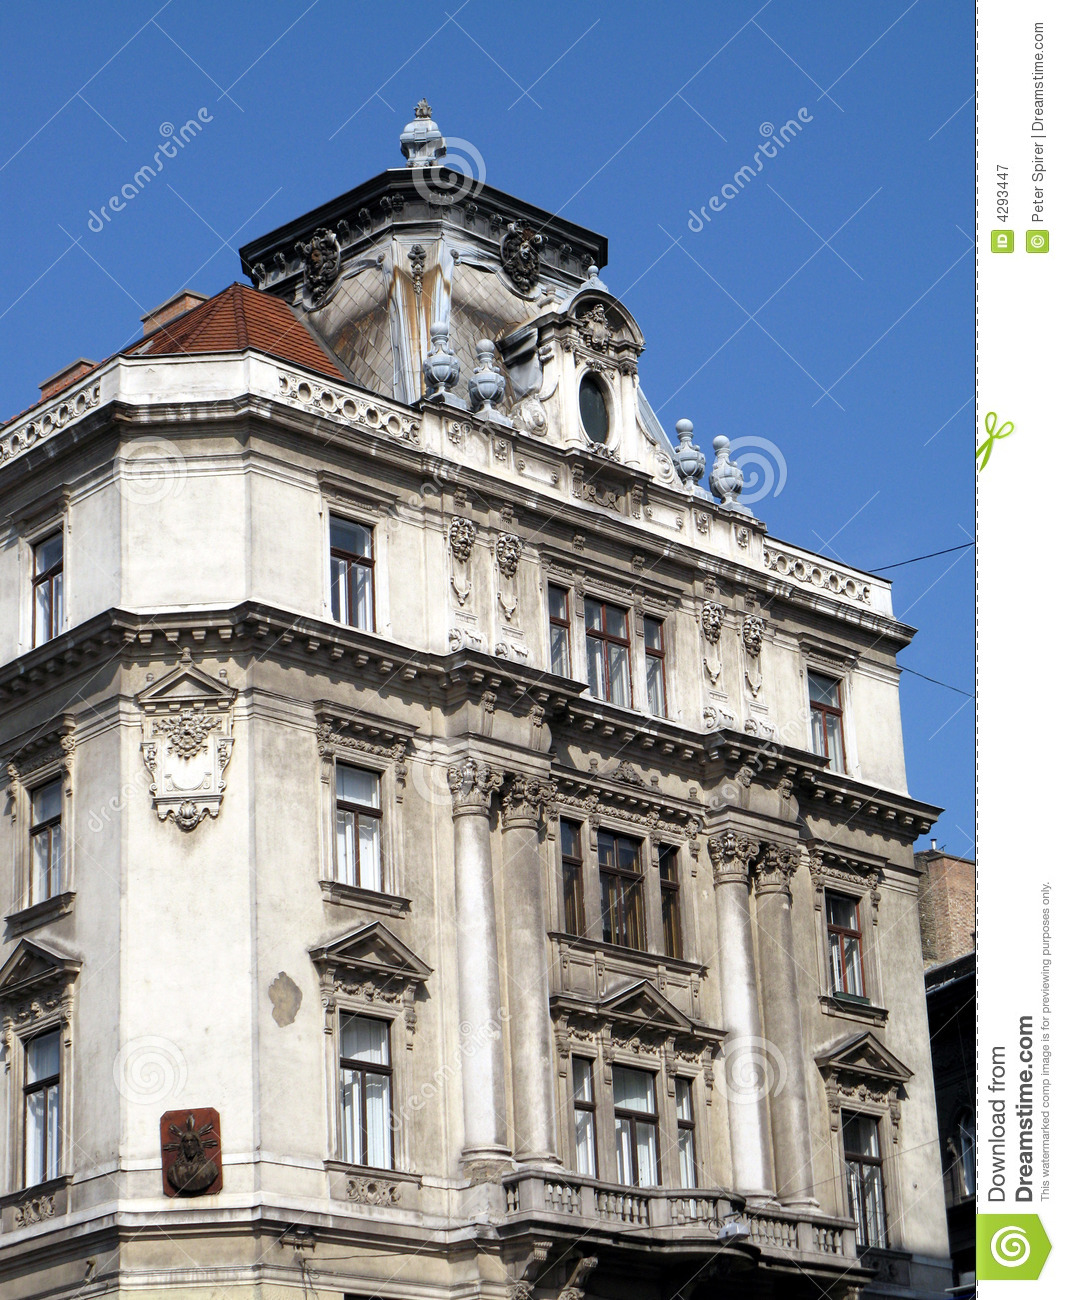 Baroque architecture budapest royalty free stock for Baroque architecture examples